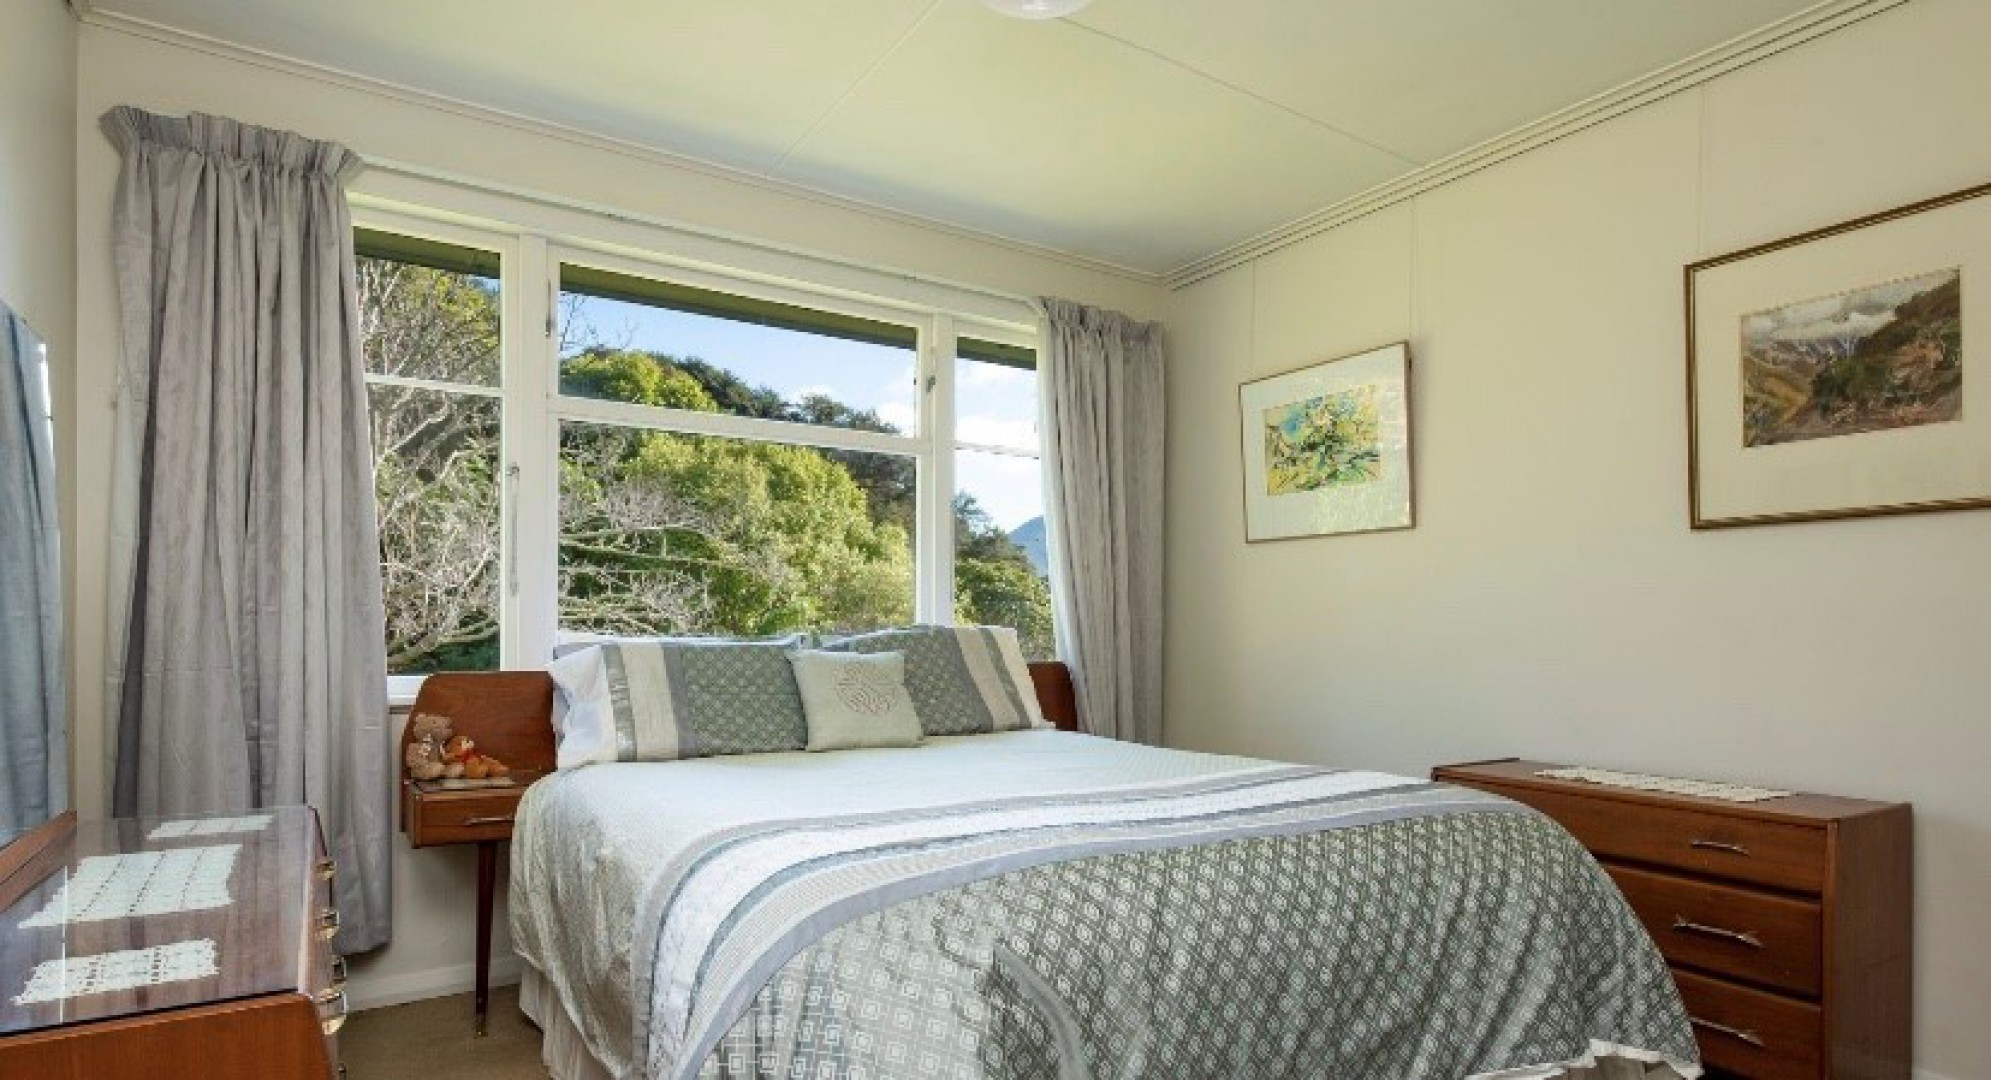 1100 Elie Bay Road - Crail Bay, Marlborough Sounds #20 -- listing/11168/t-v2.jpeg